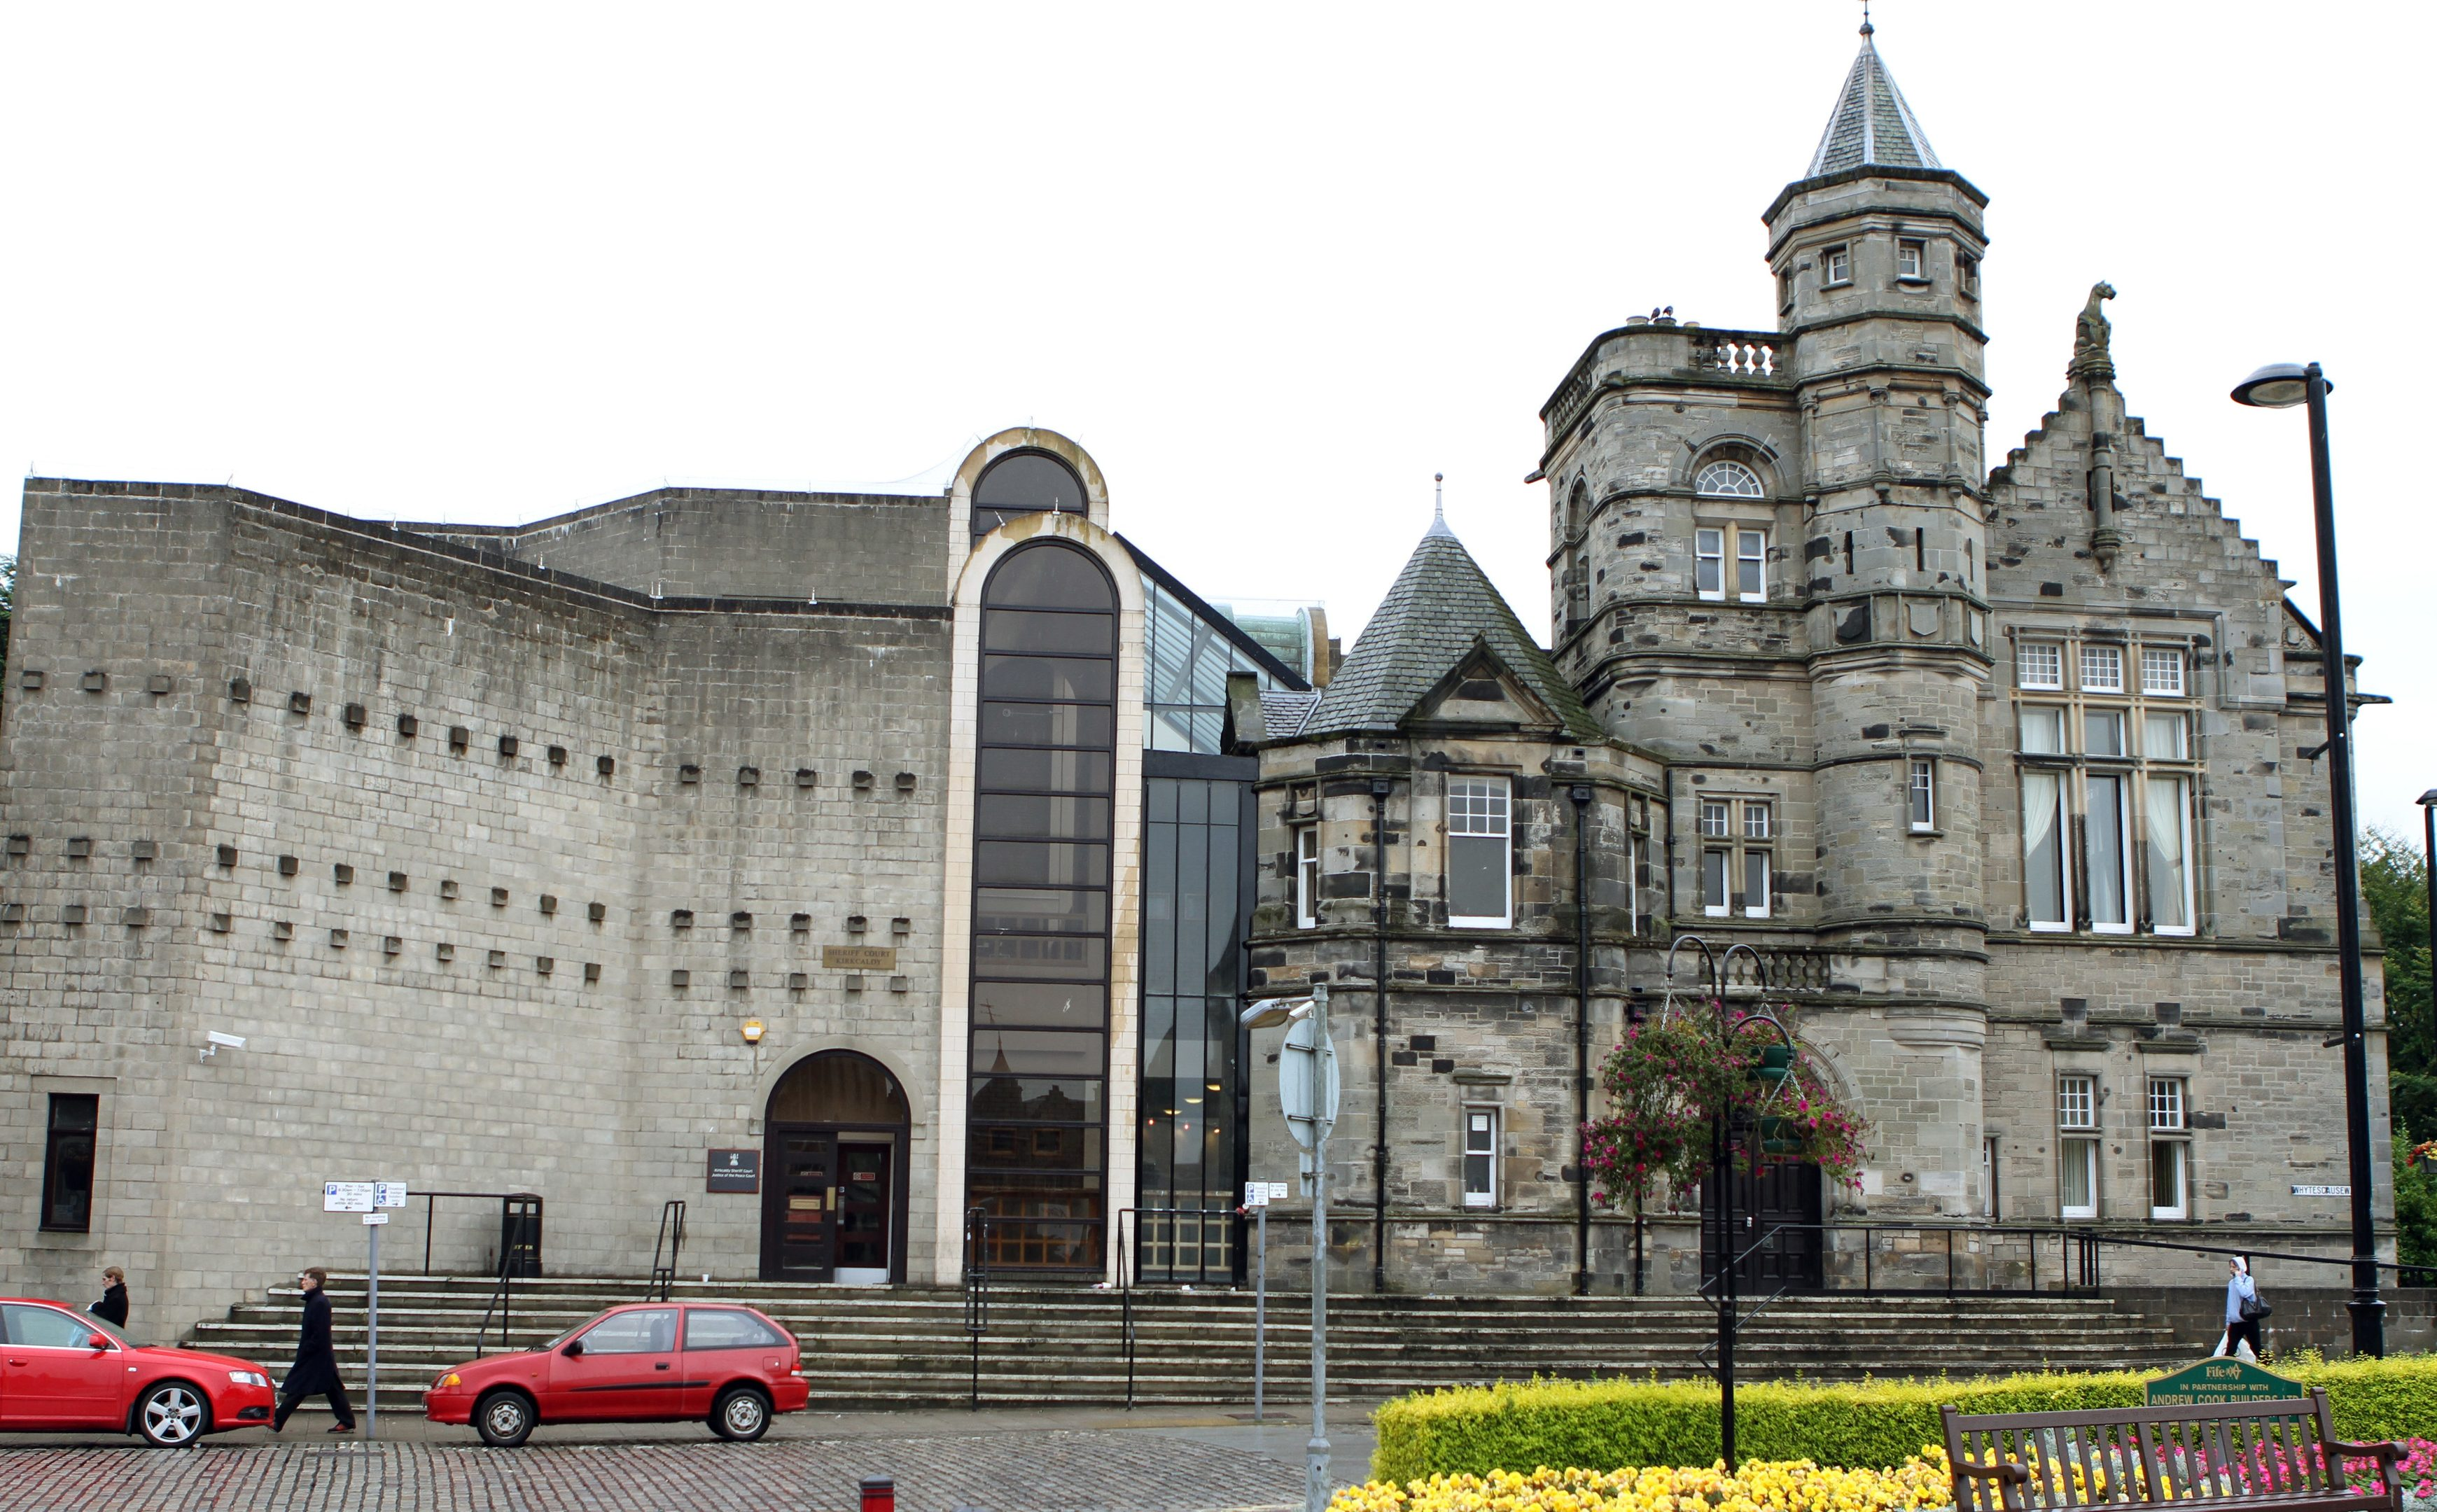 The trial will take place at Kirkcaldy Sheriff Court.